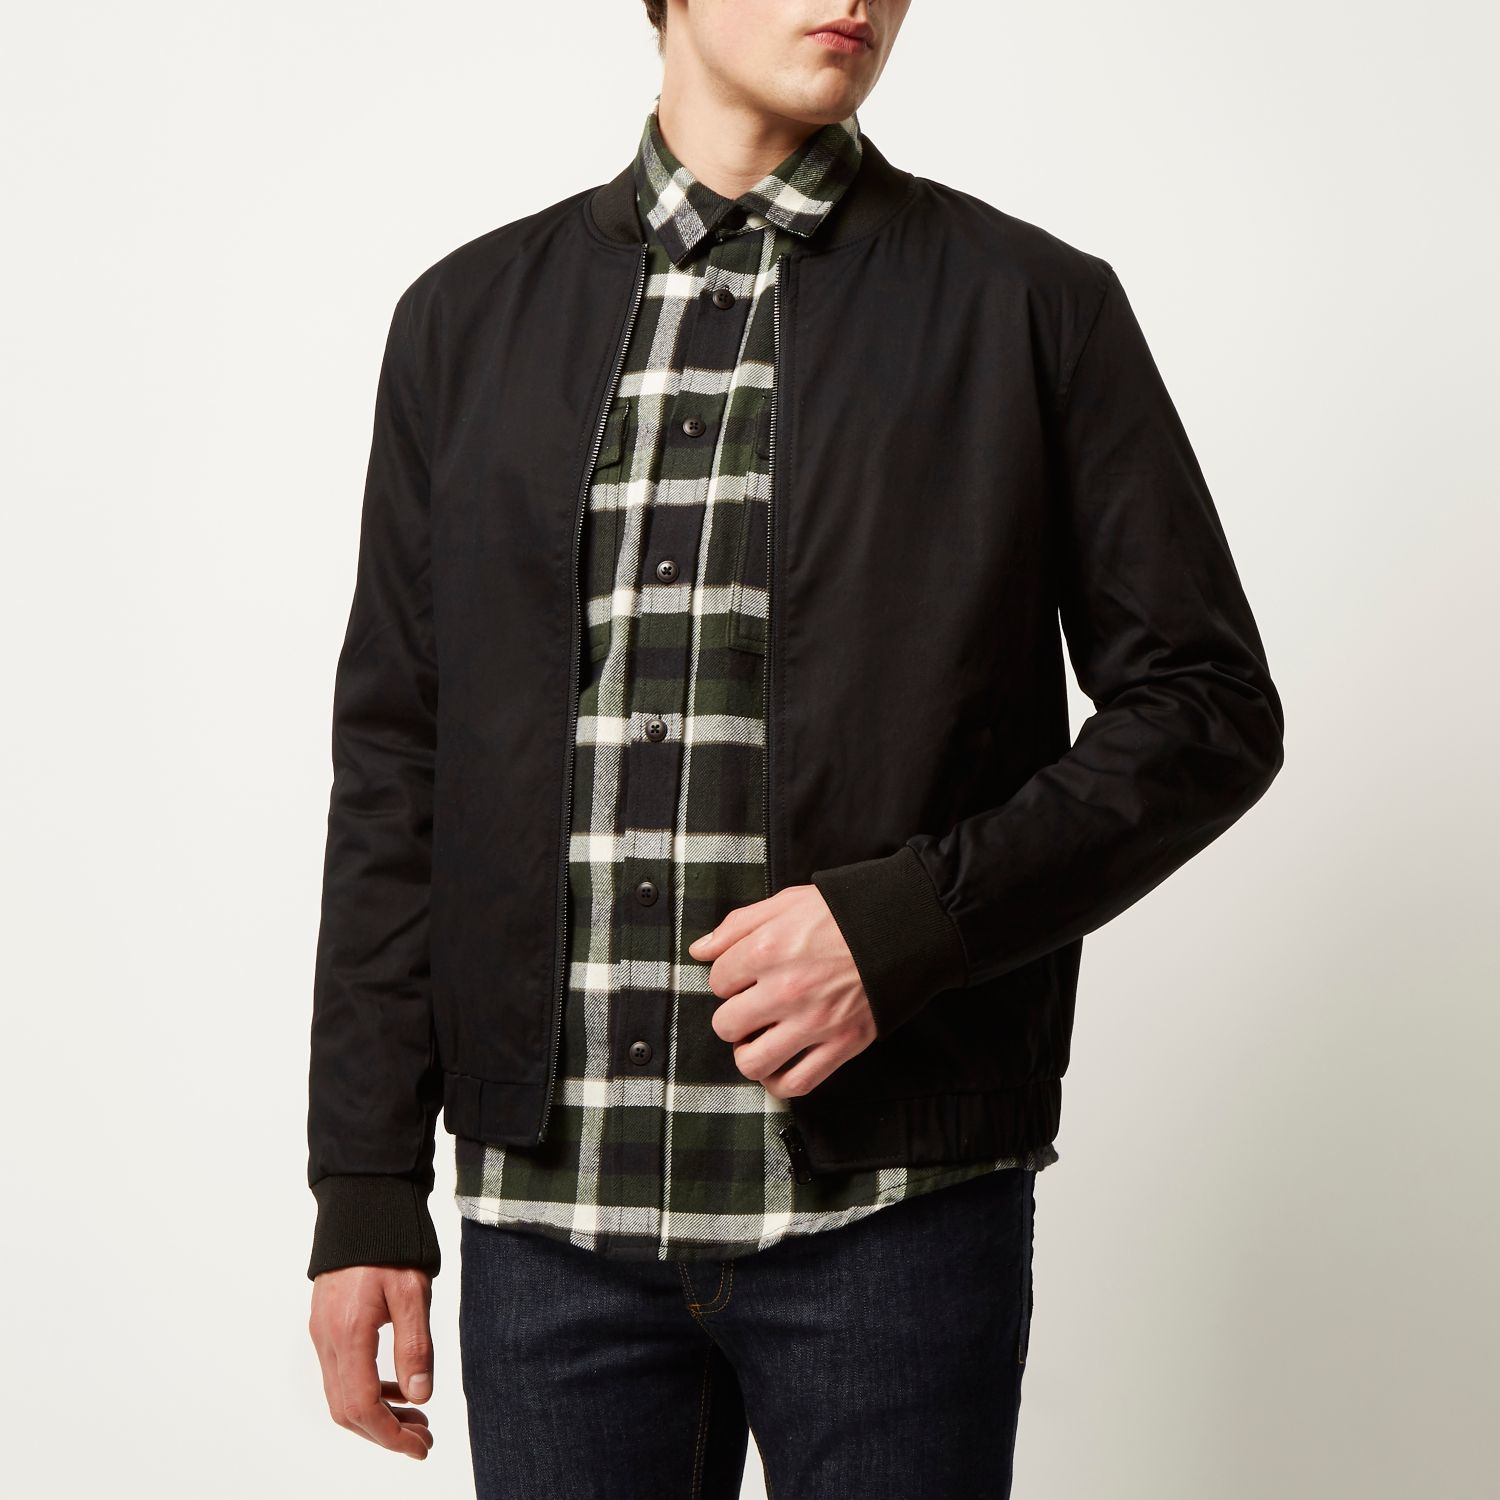 Casual Bomber Jacket - JacketIn